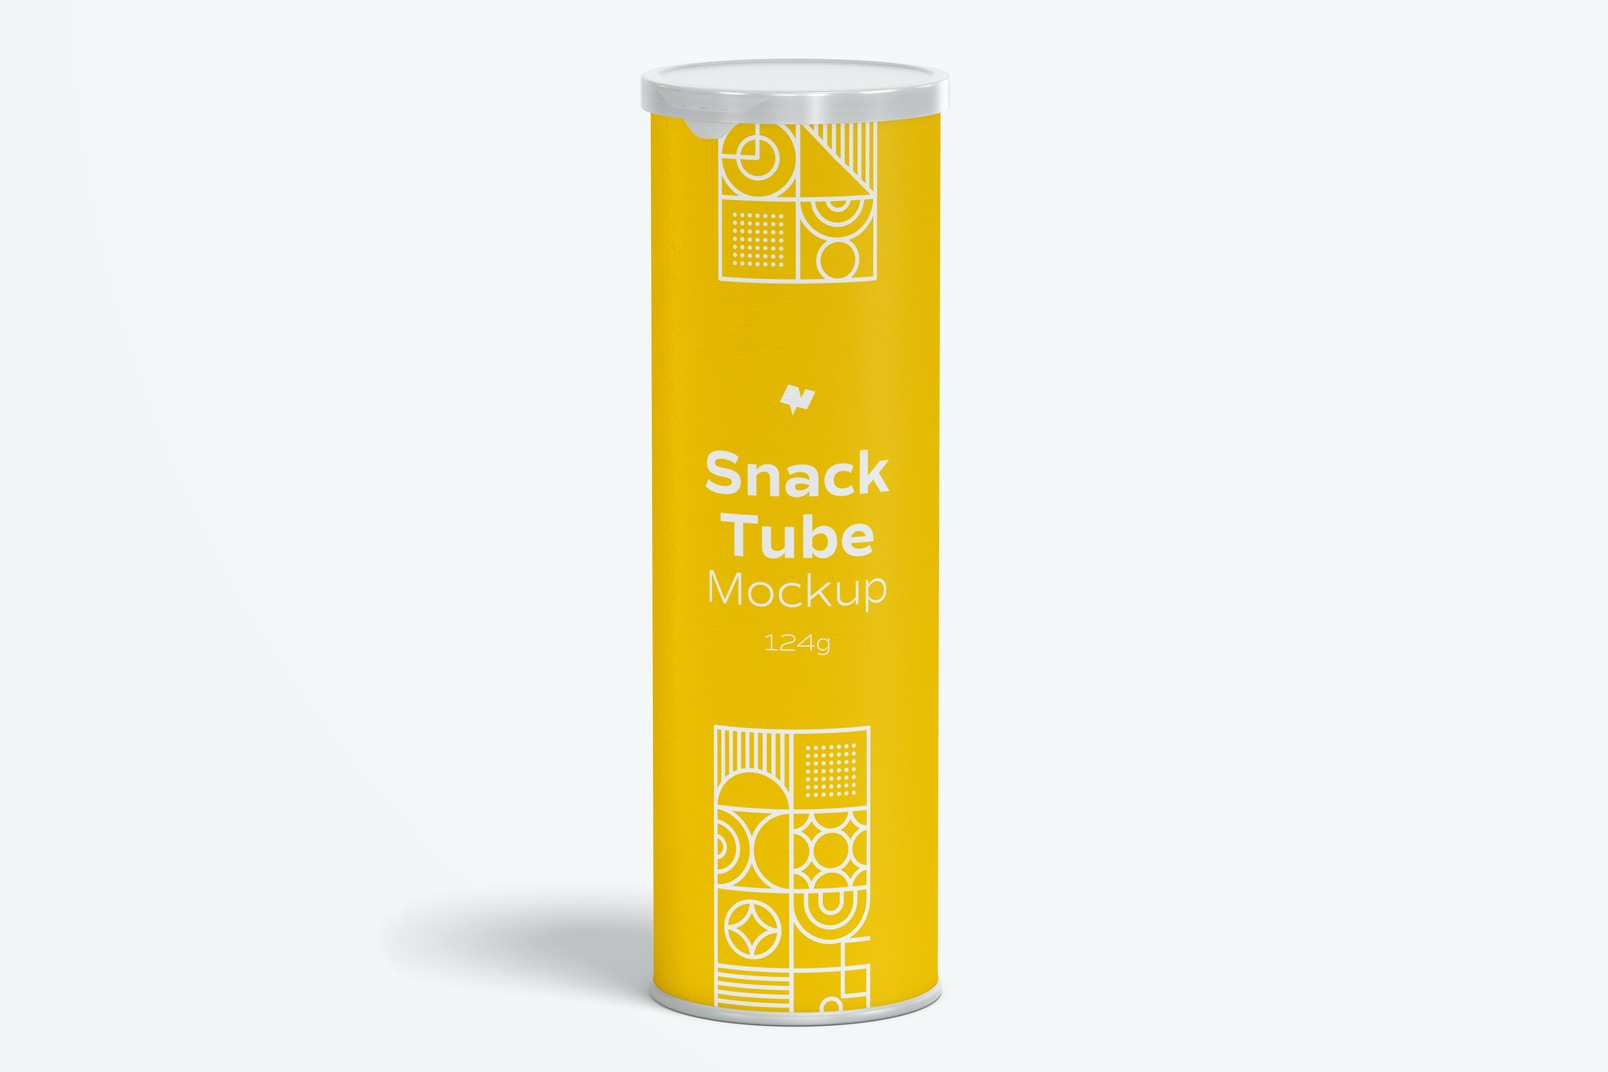 124g Snack Tube Mockup, Front View